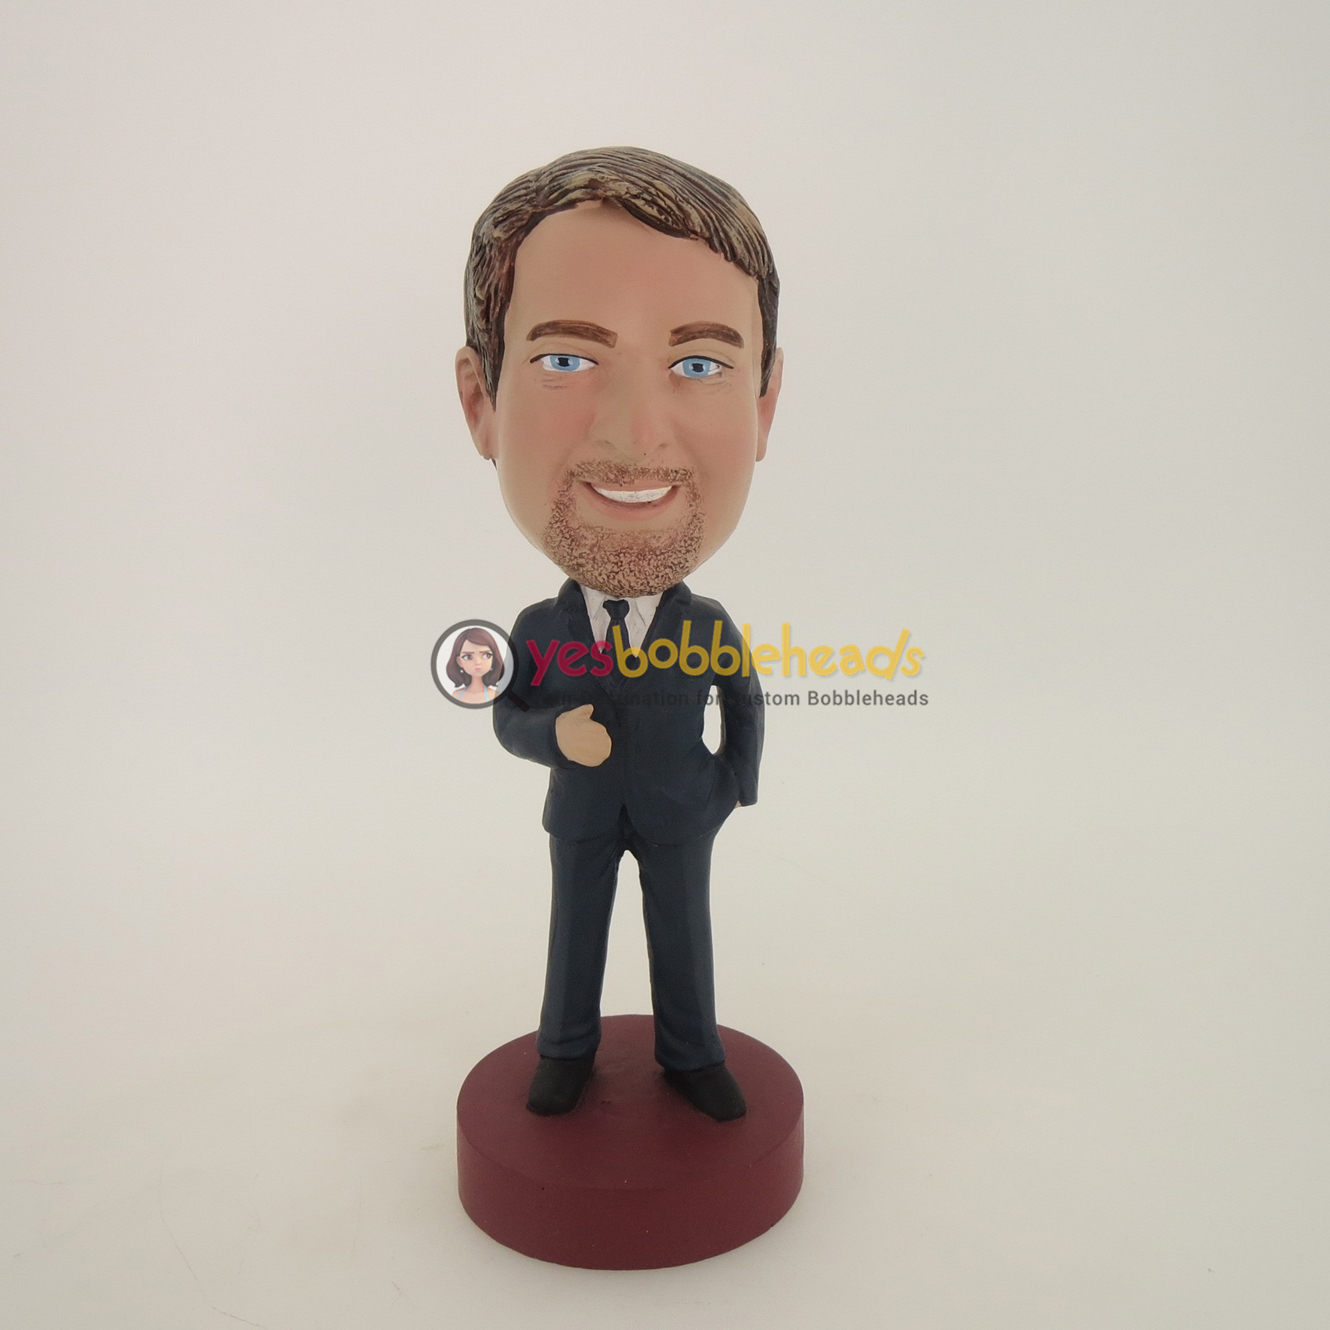 Picture of Custom Bobblehead Doll: Business Man With Beard